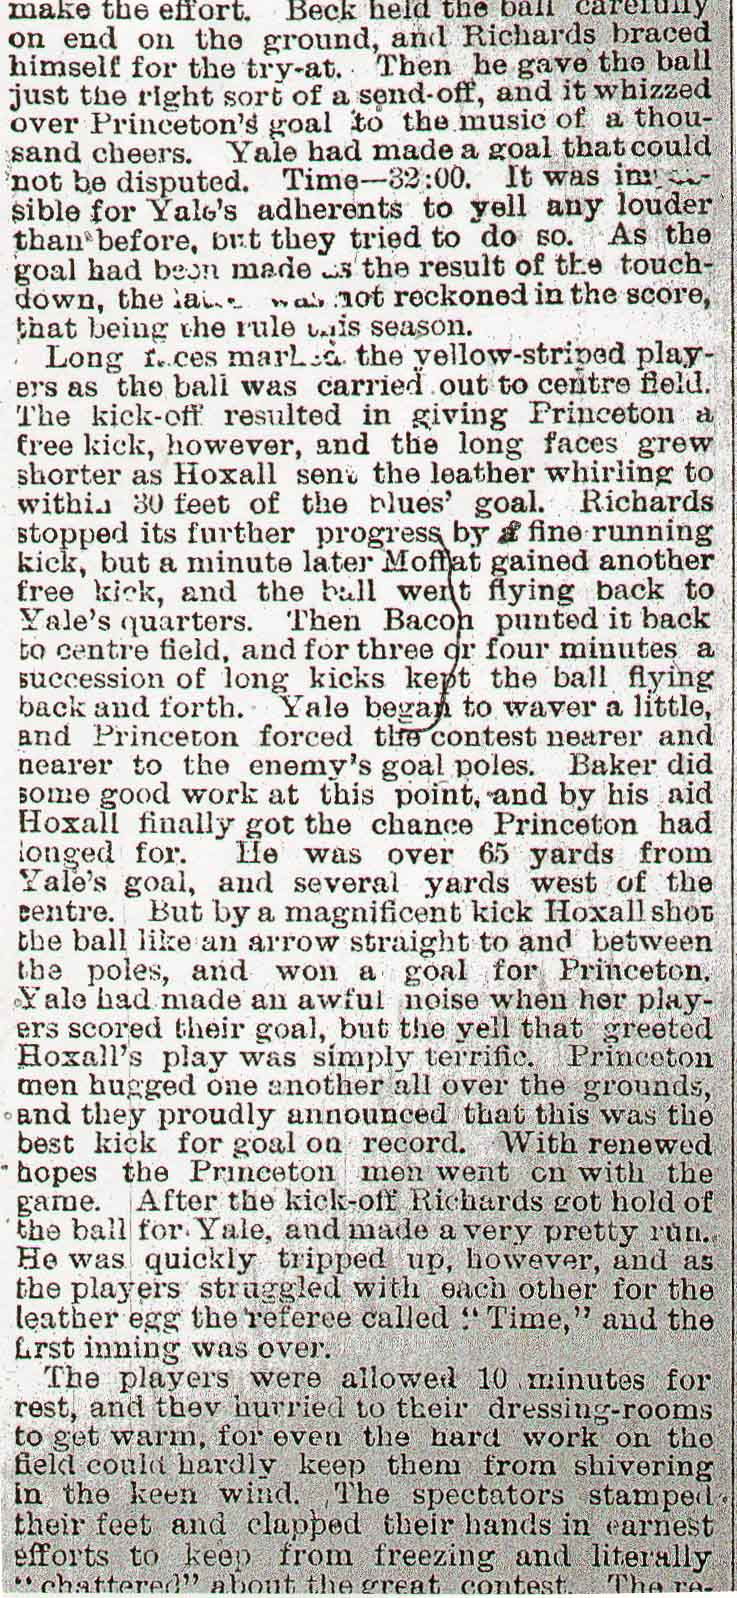 New York Times article on John Haxall's 65-yard field goal on December 1, 1882 for Princeton against YAle at the Polo Grounds.